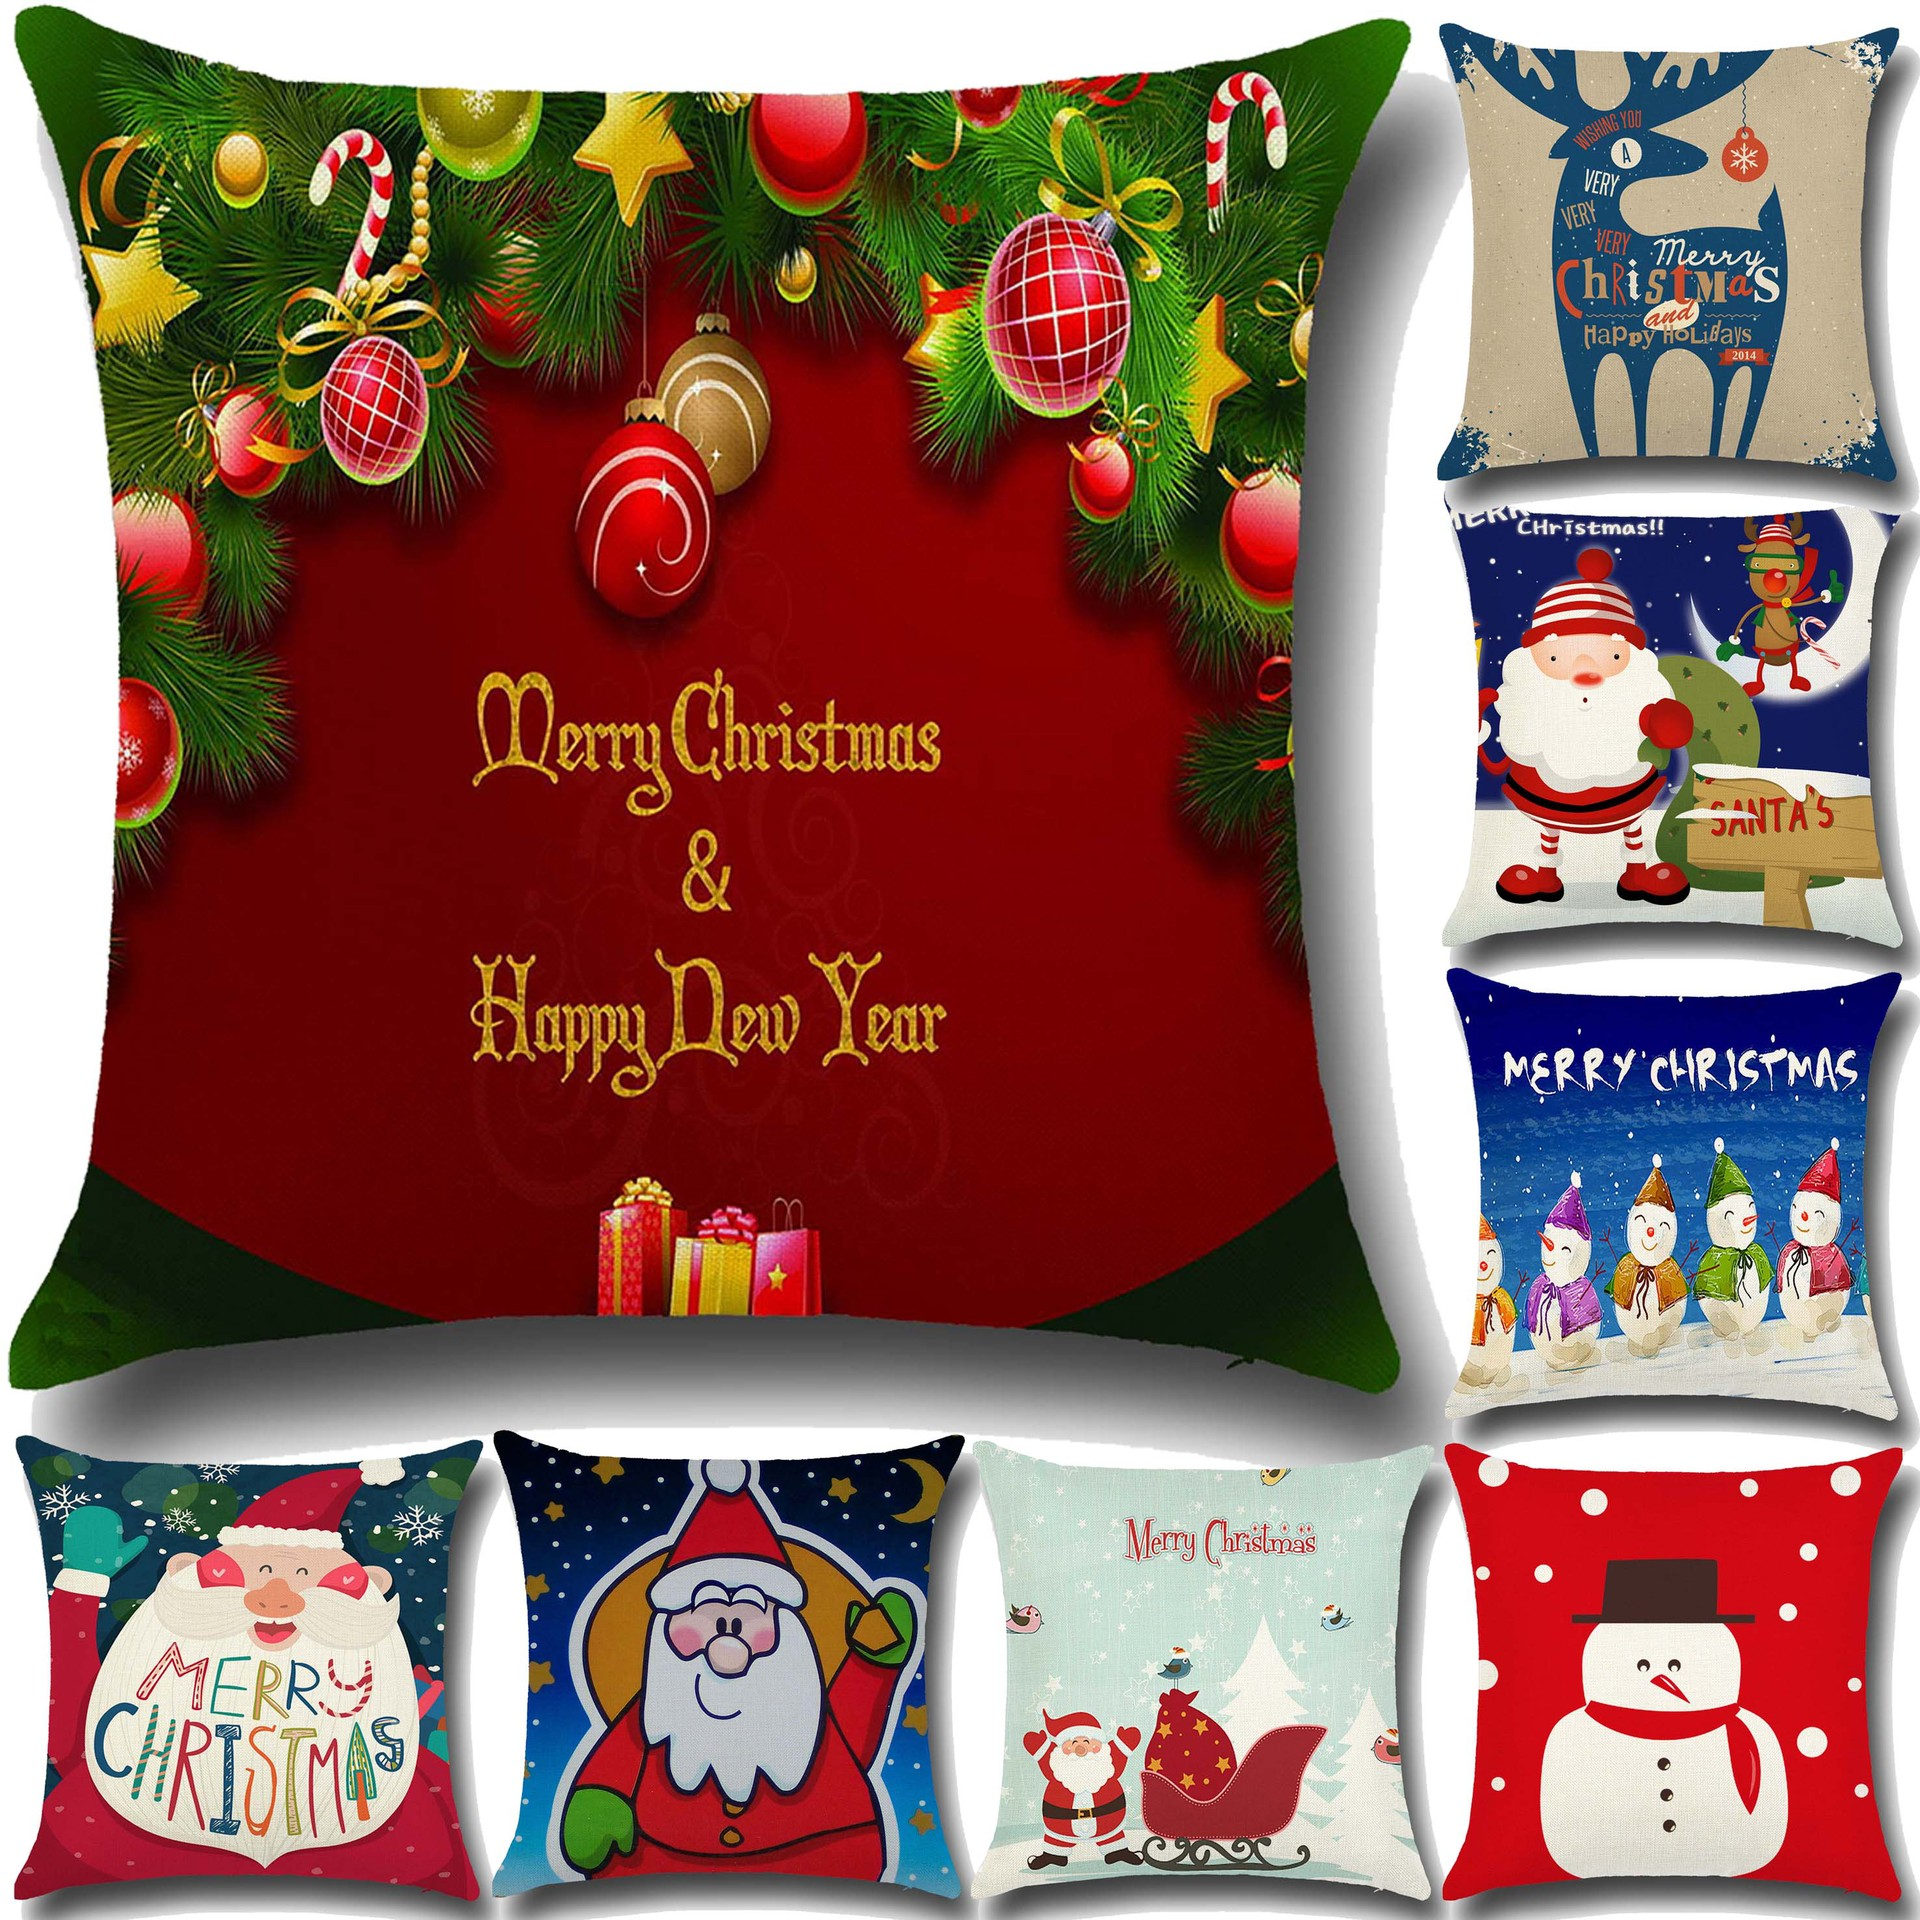 Christmas Chair Covers Big W Tree Store Online Buy Wholesale Outdoor Pillows From China